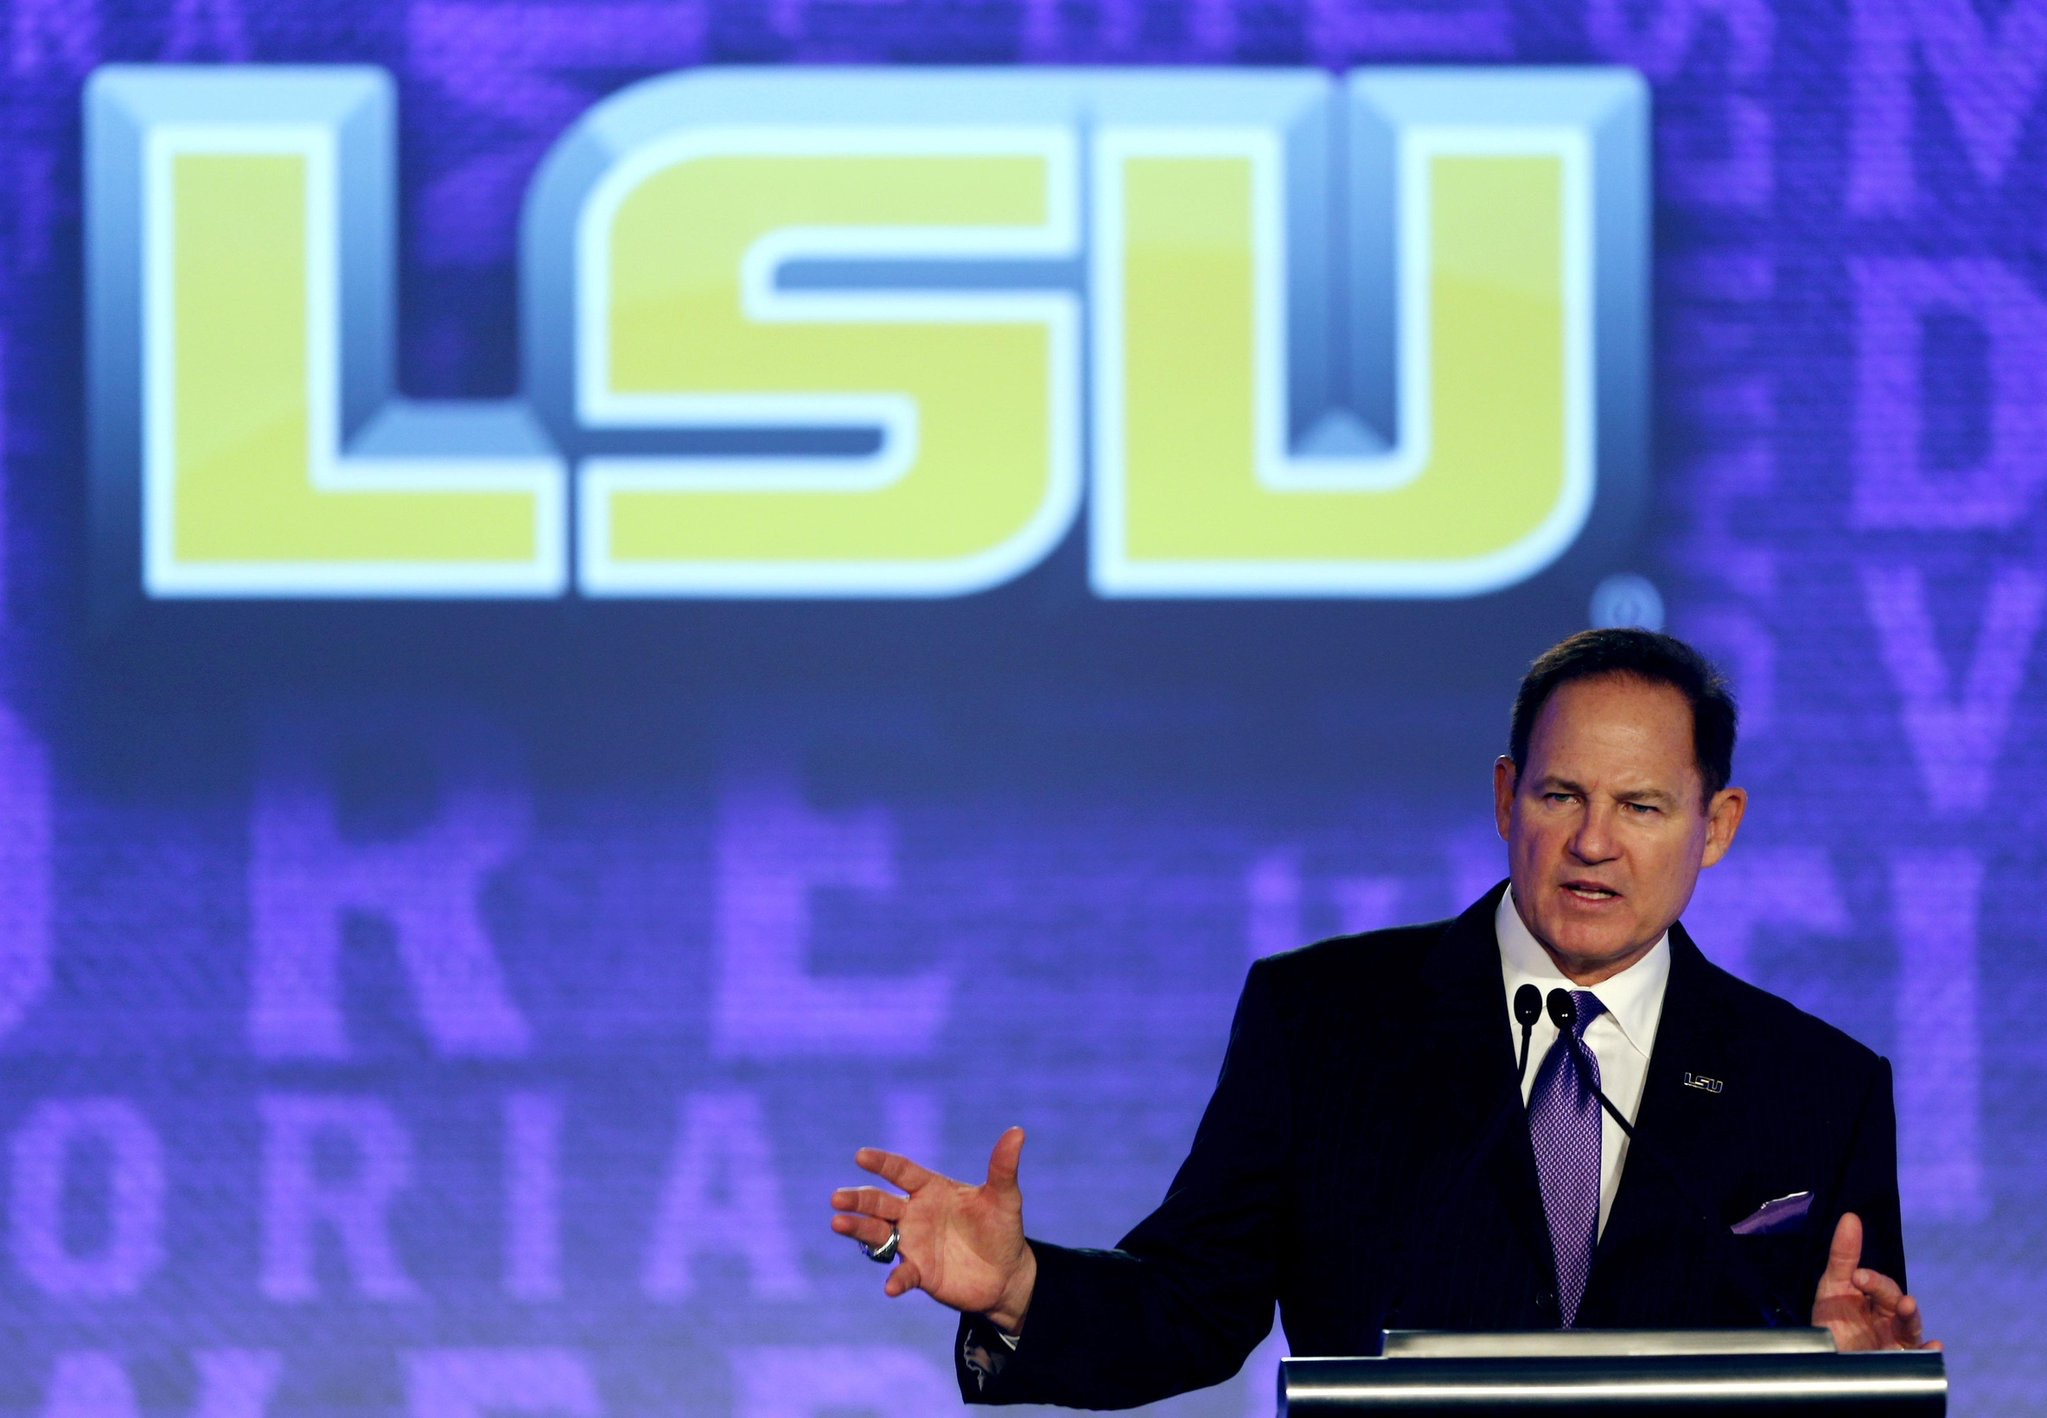 Les Miles discusses recent social unrest, football season ahead at 2016 SEC Media Days